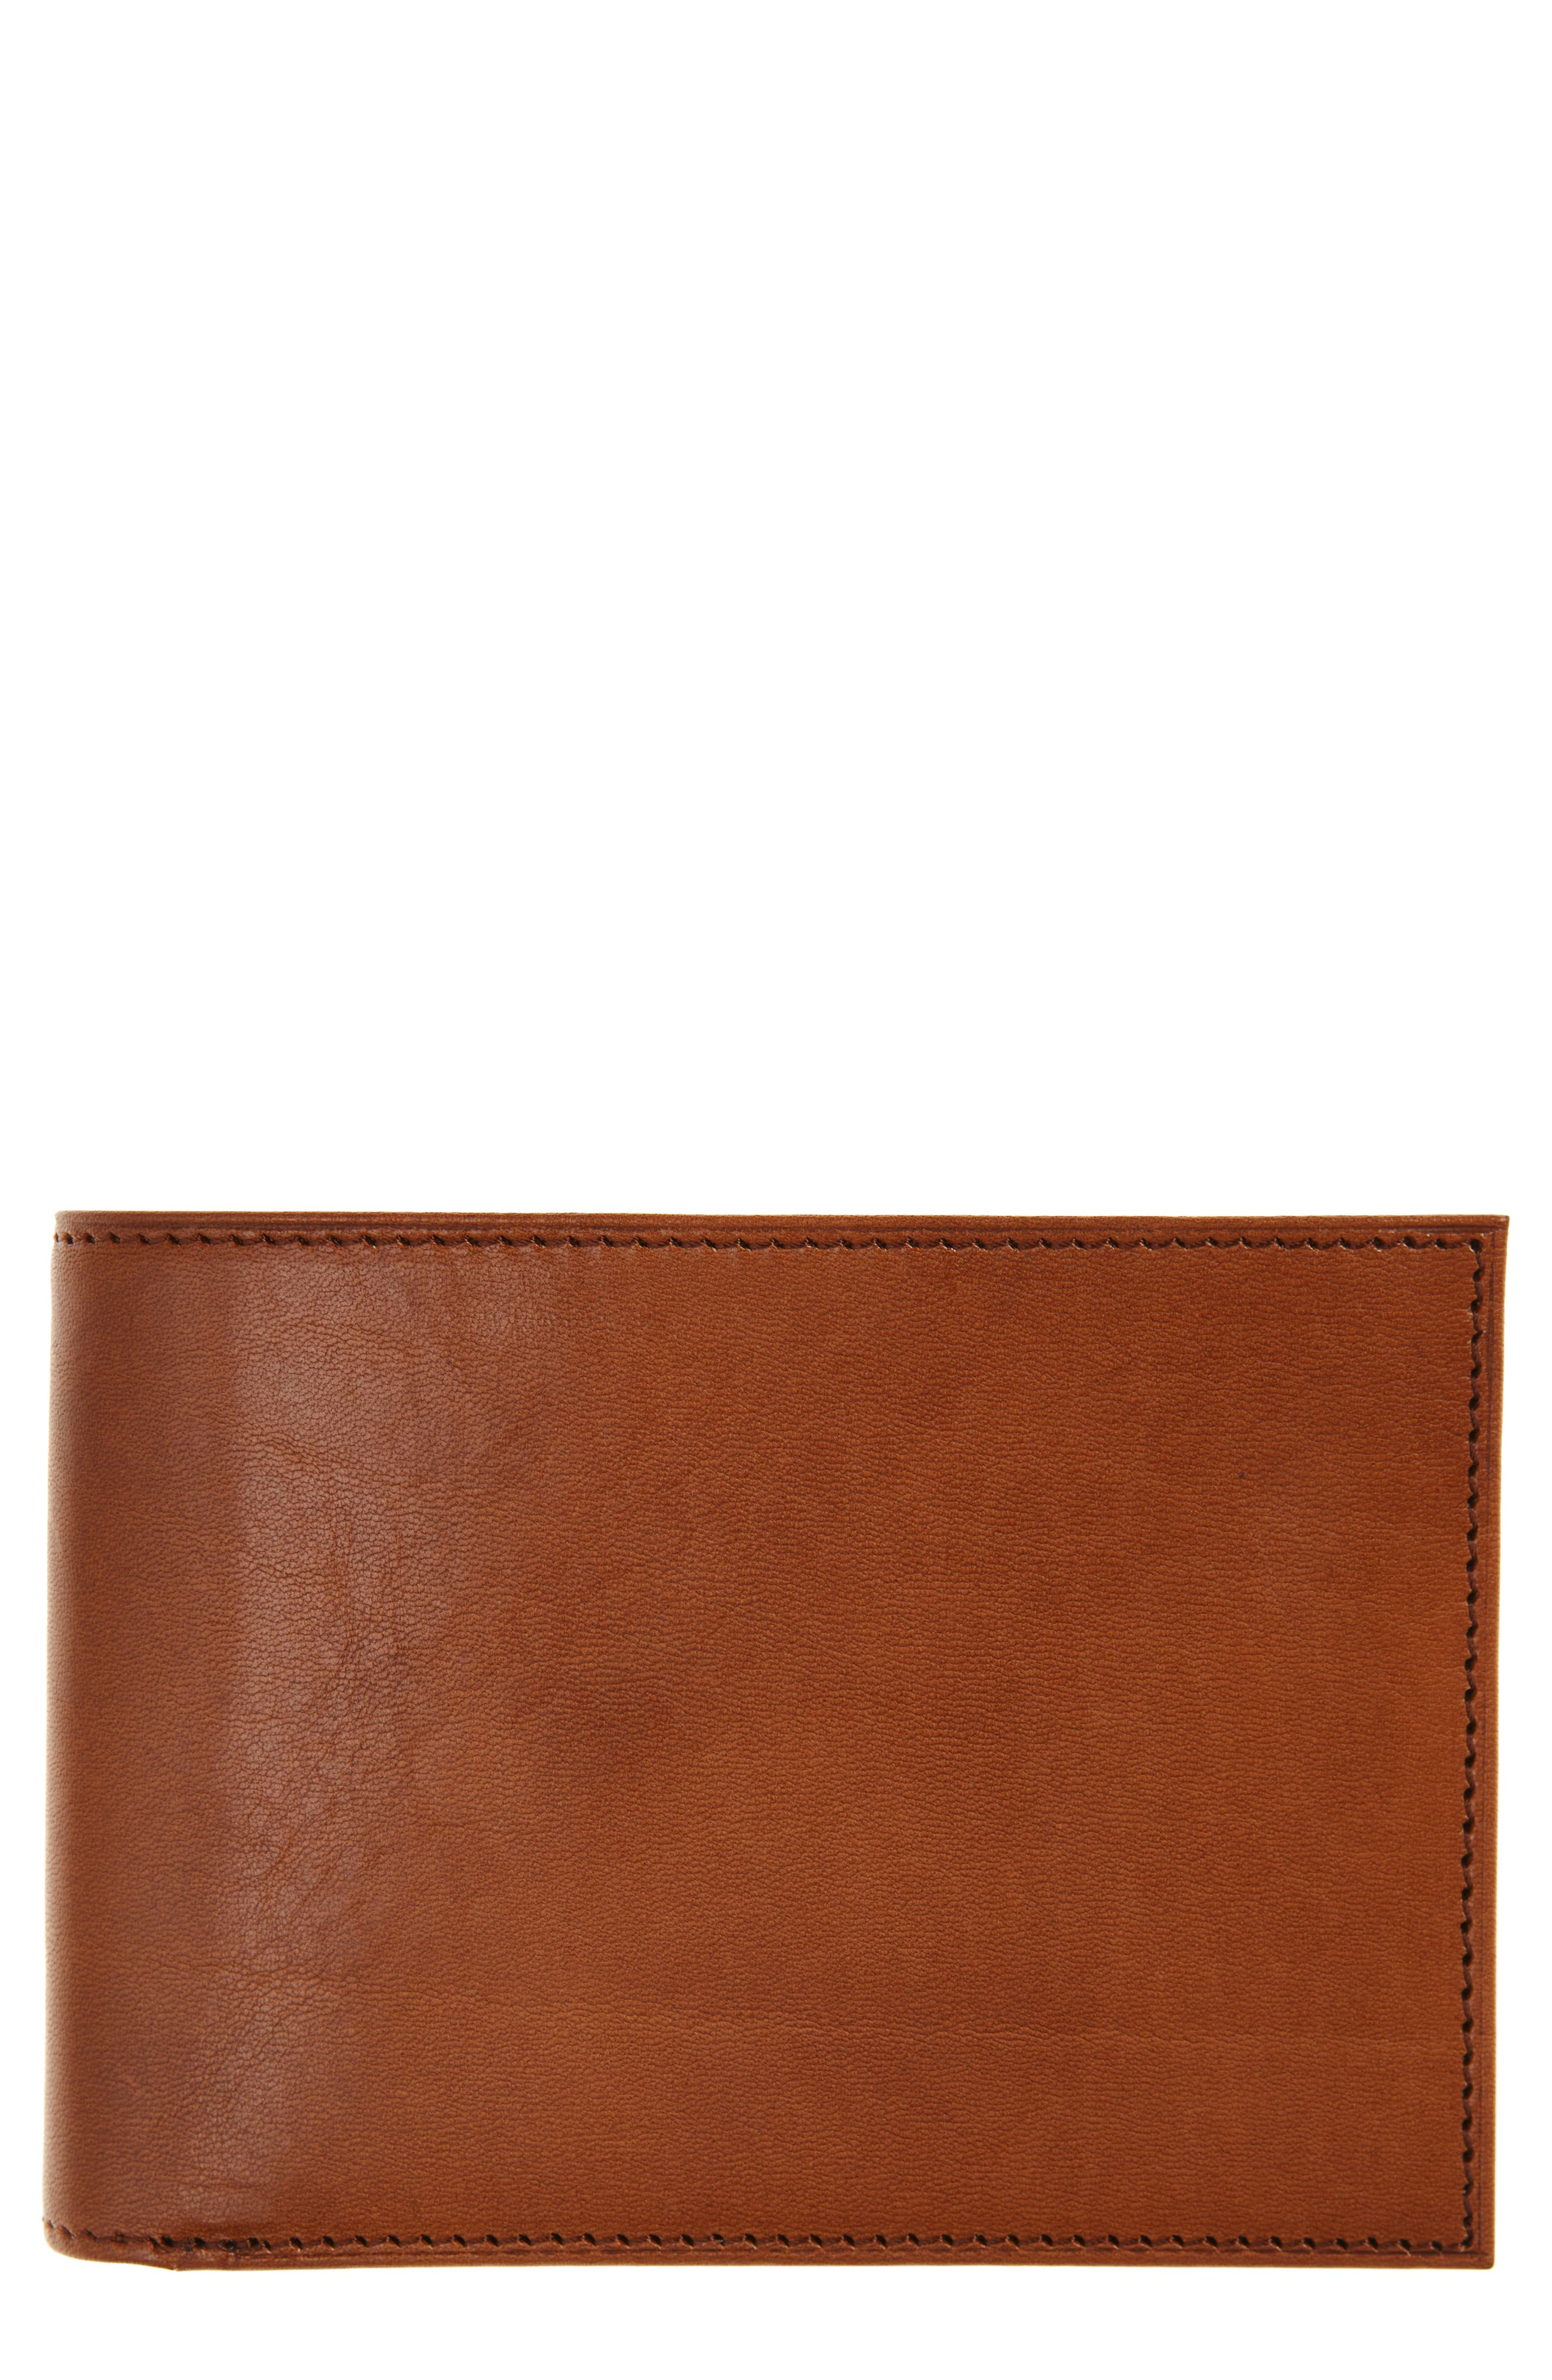 Aged Leather Executive Wallet